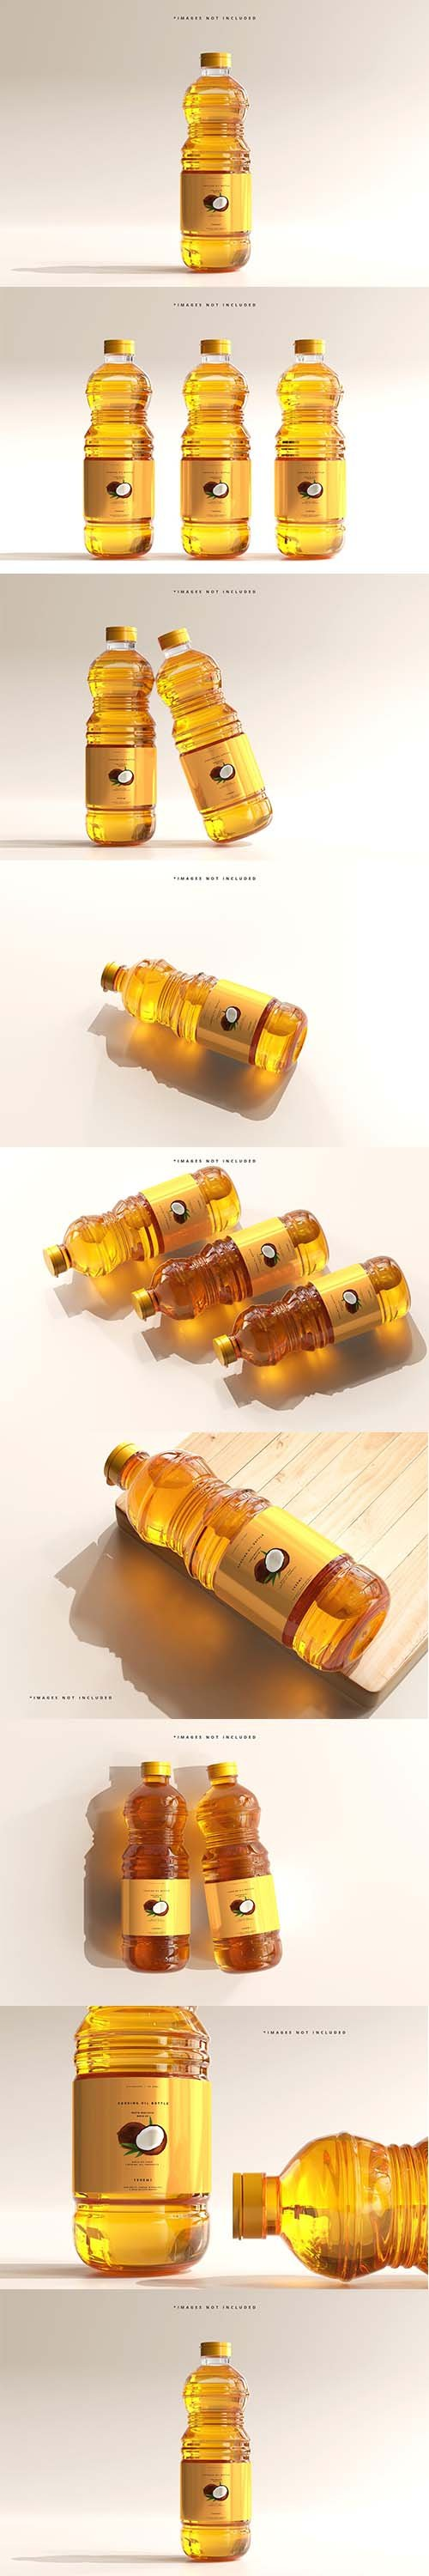 Cooking Oil Bottle Mockup 6005164